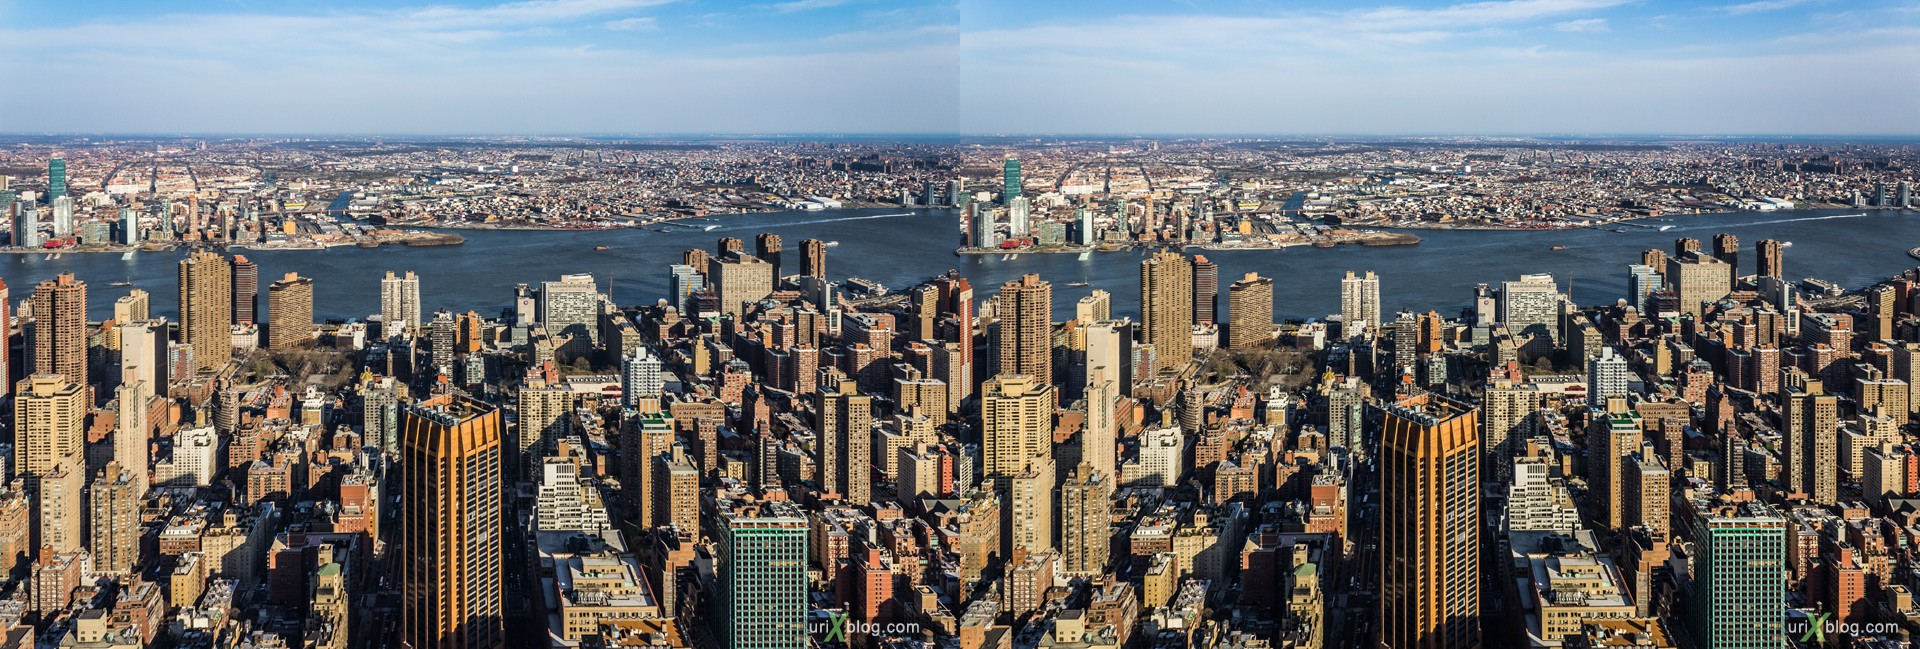 2013, NYC, New York, Manhattan, East River, Empire State Building, view from the top, city, building, skyscraper, panorama, 3D, stereo pair, cross-eyed, crossview, cross view stereo pair, stereoscopic